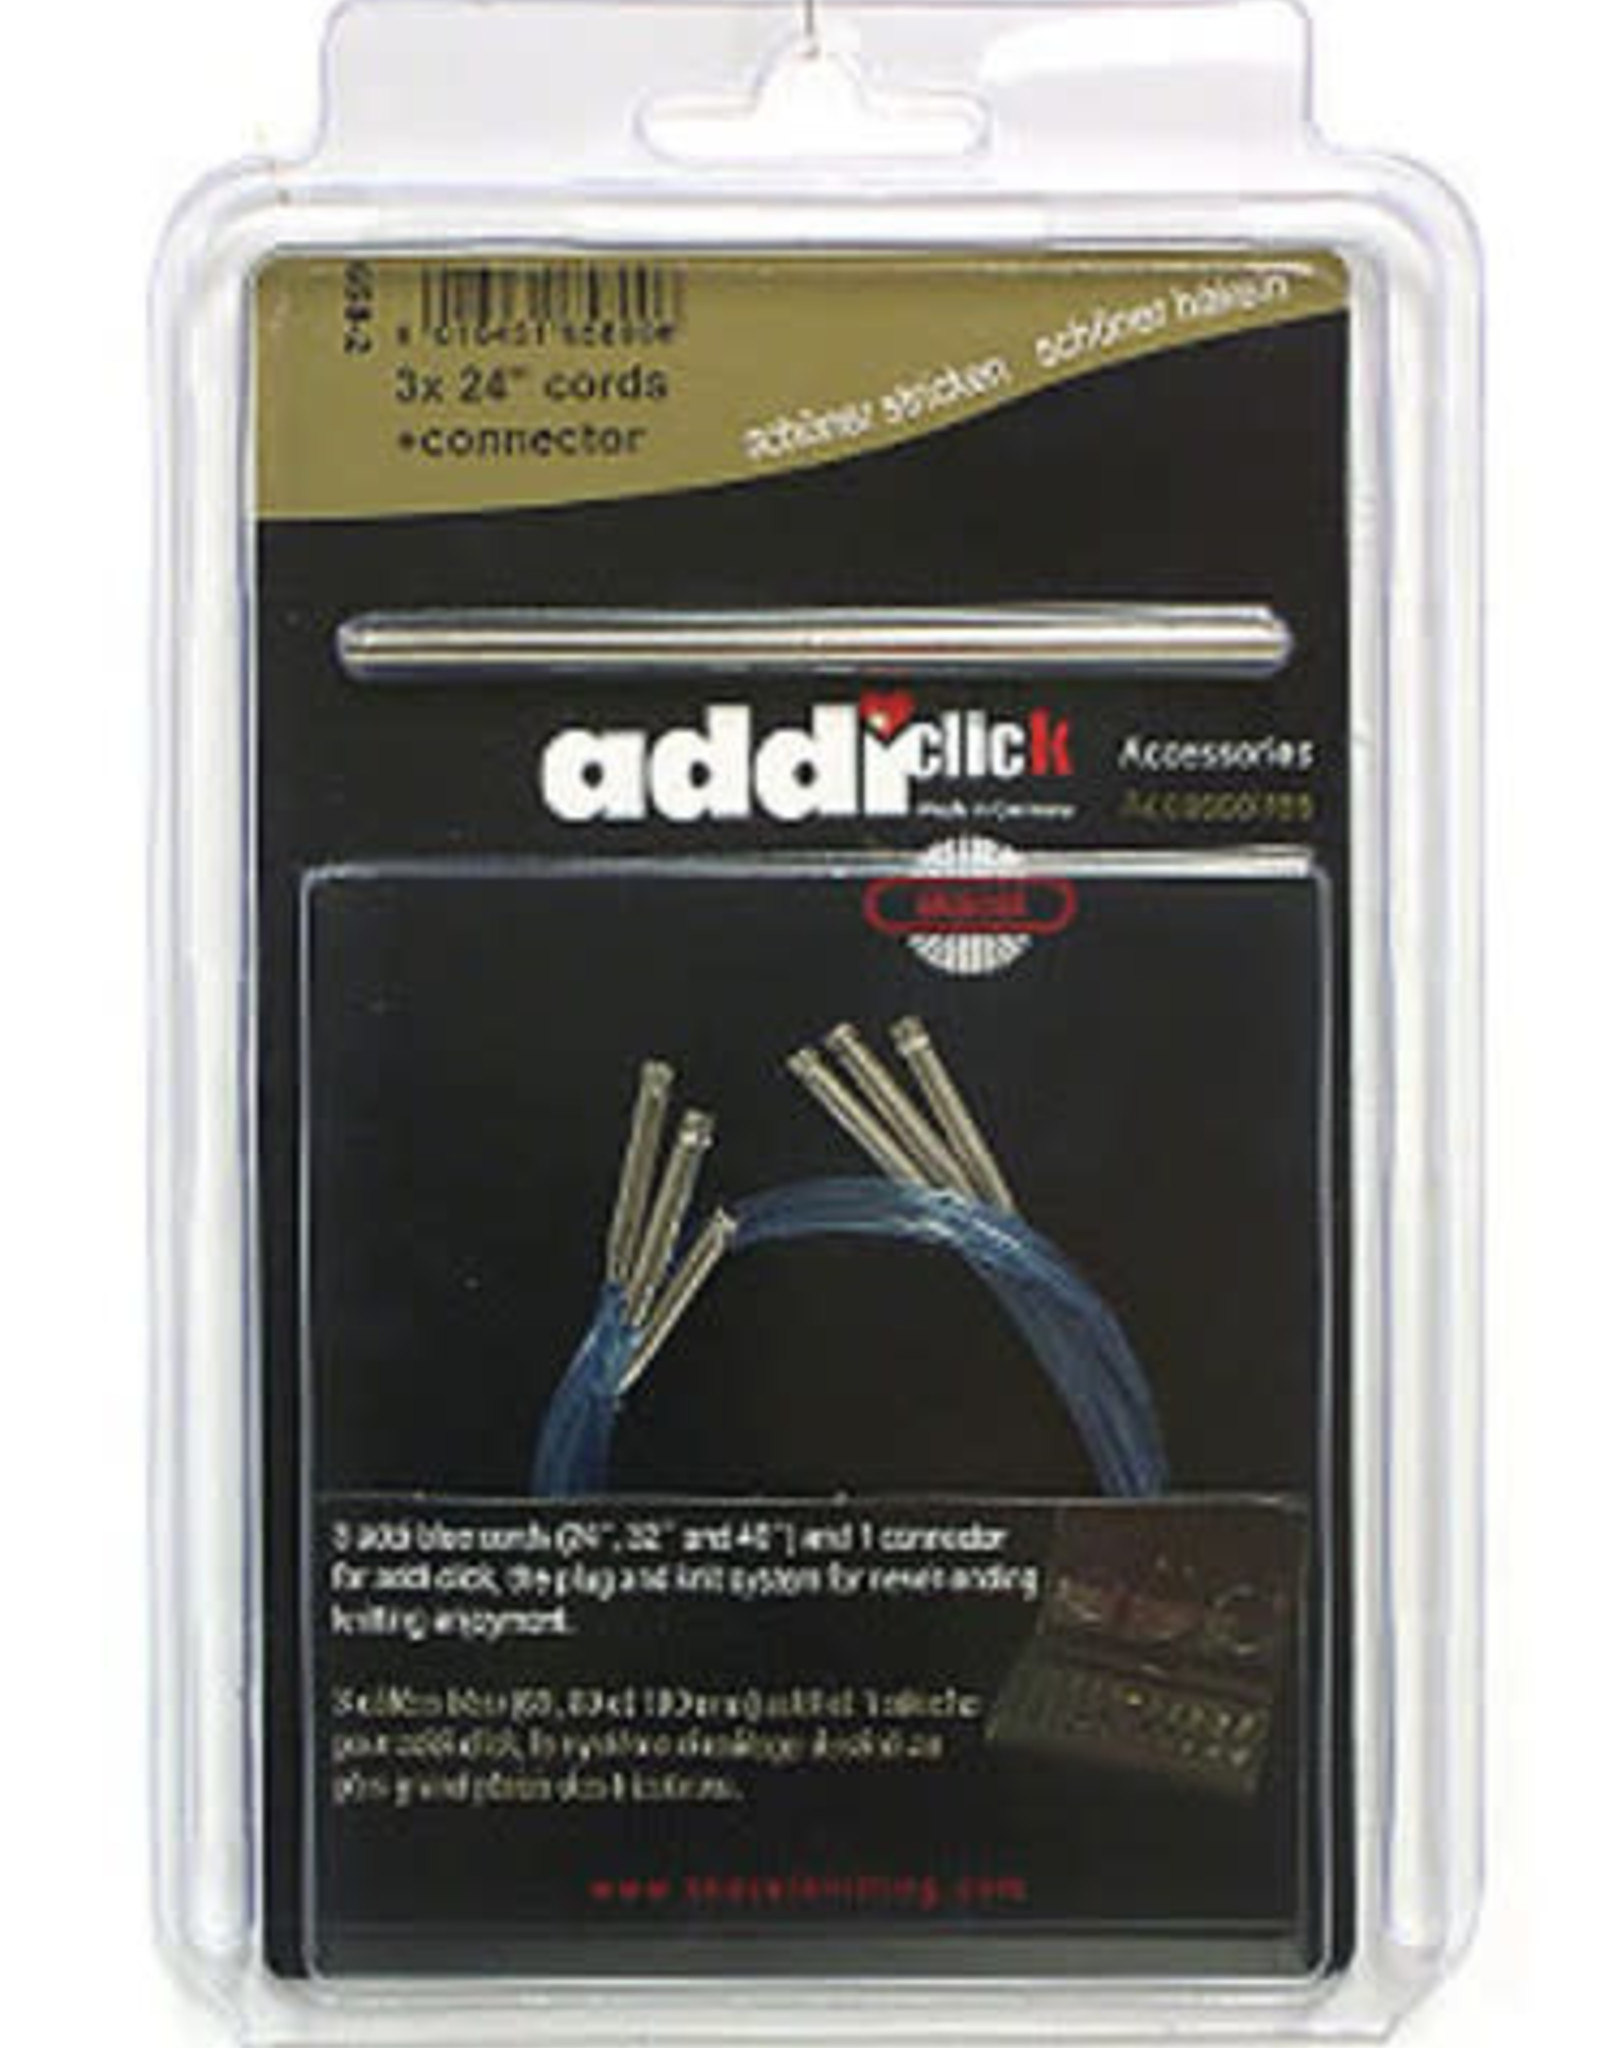 Addi Addi Click Cord set 24 in. w/ connector